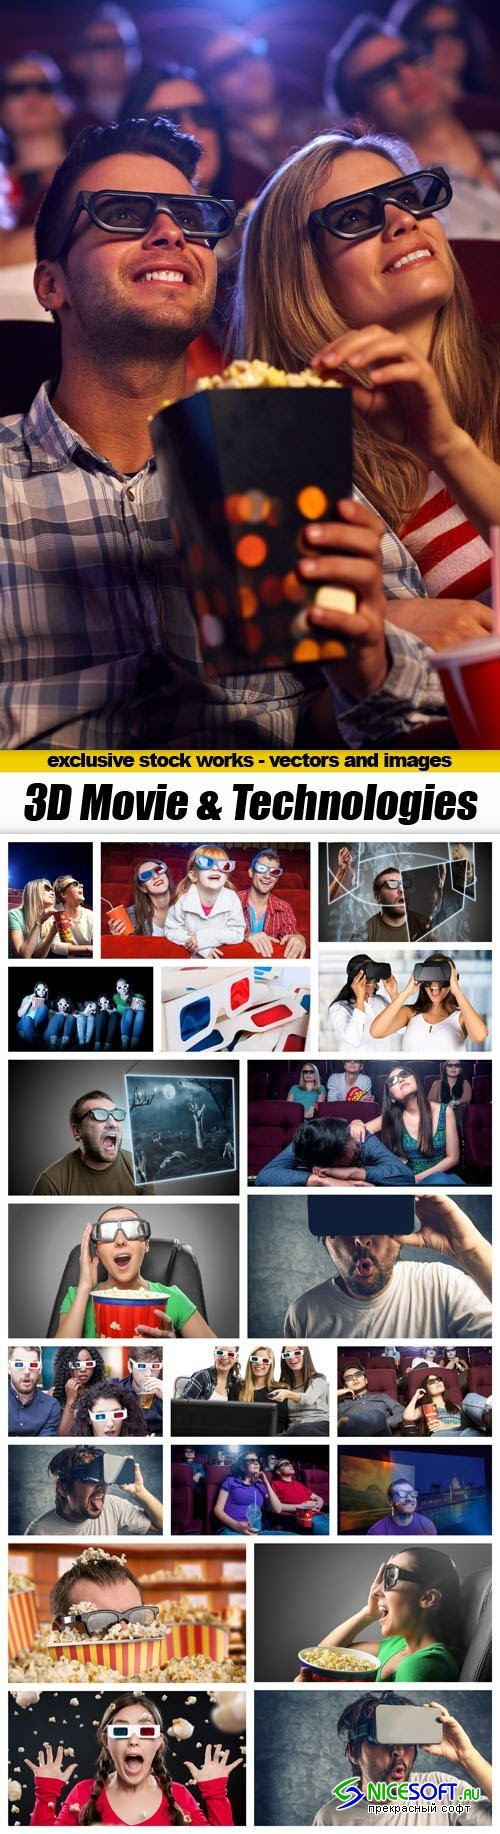 3d movie 3dmoviescom is run by creative individuals who are some of the worlds leading experts in 3d creation new and powerful we provide premium quality video and exposure for filmmakers.